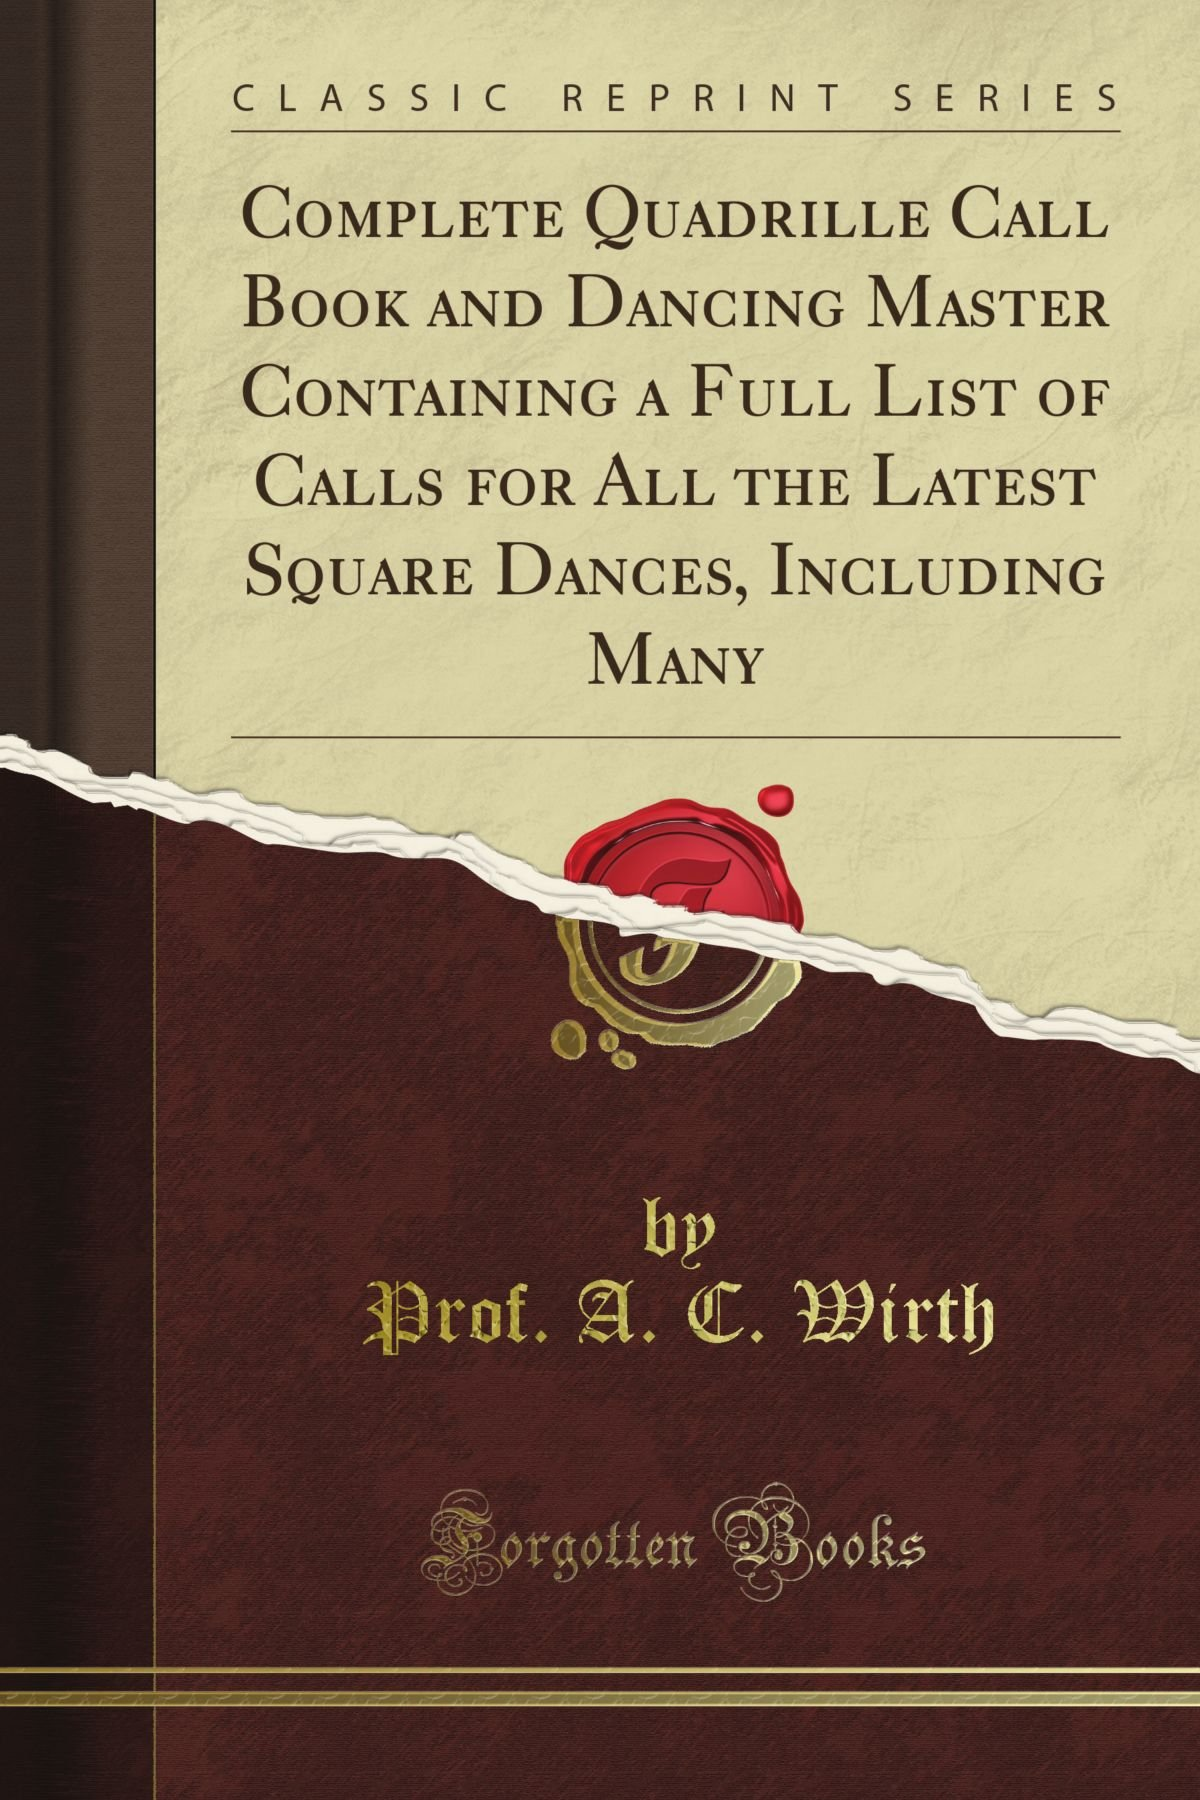 Complete Quadrille Call Book and Dancing Master Containing a Full List of Calls for All the Latest Square Dances, Including Many (Classic Reprint) PDF